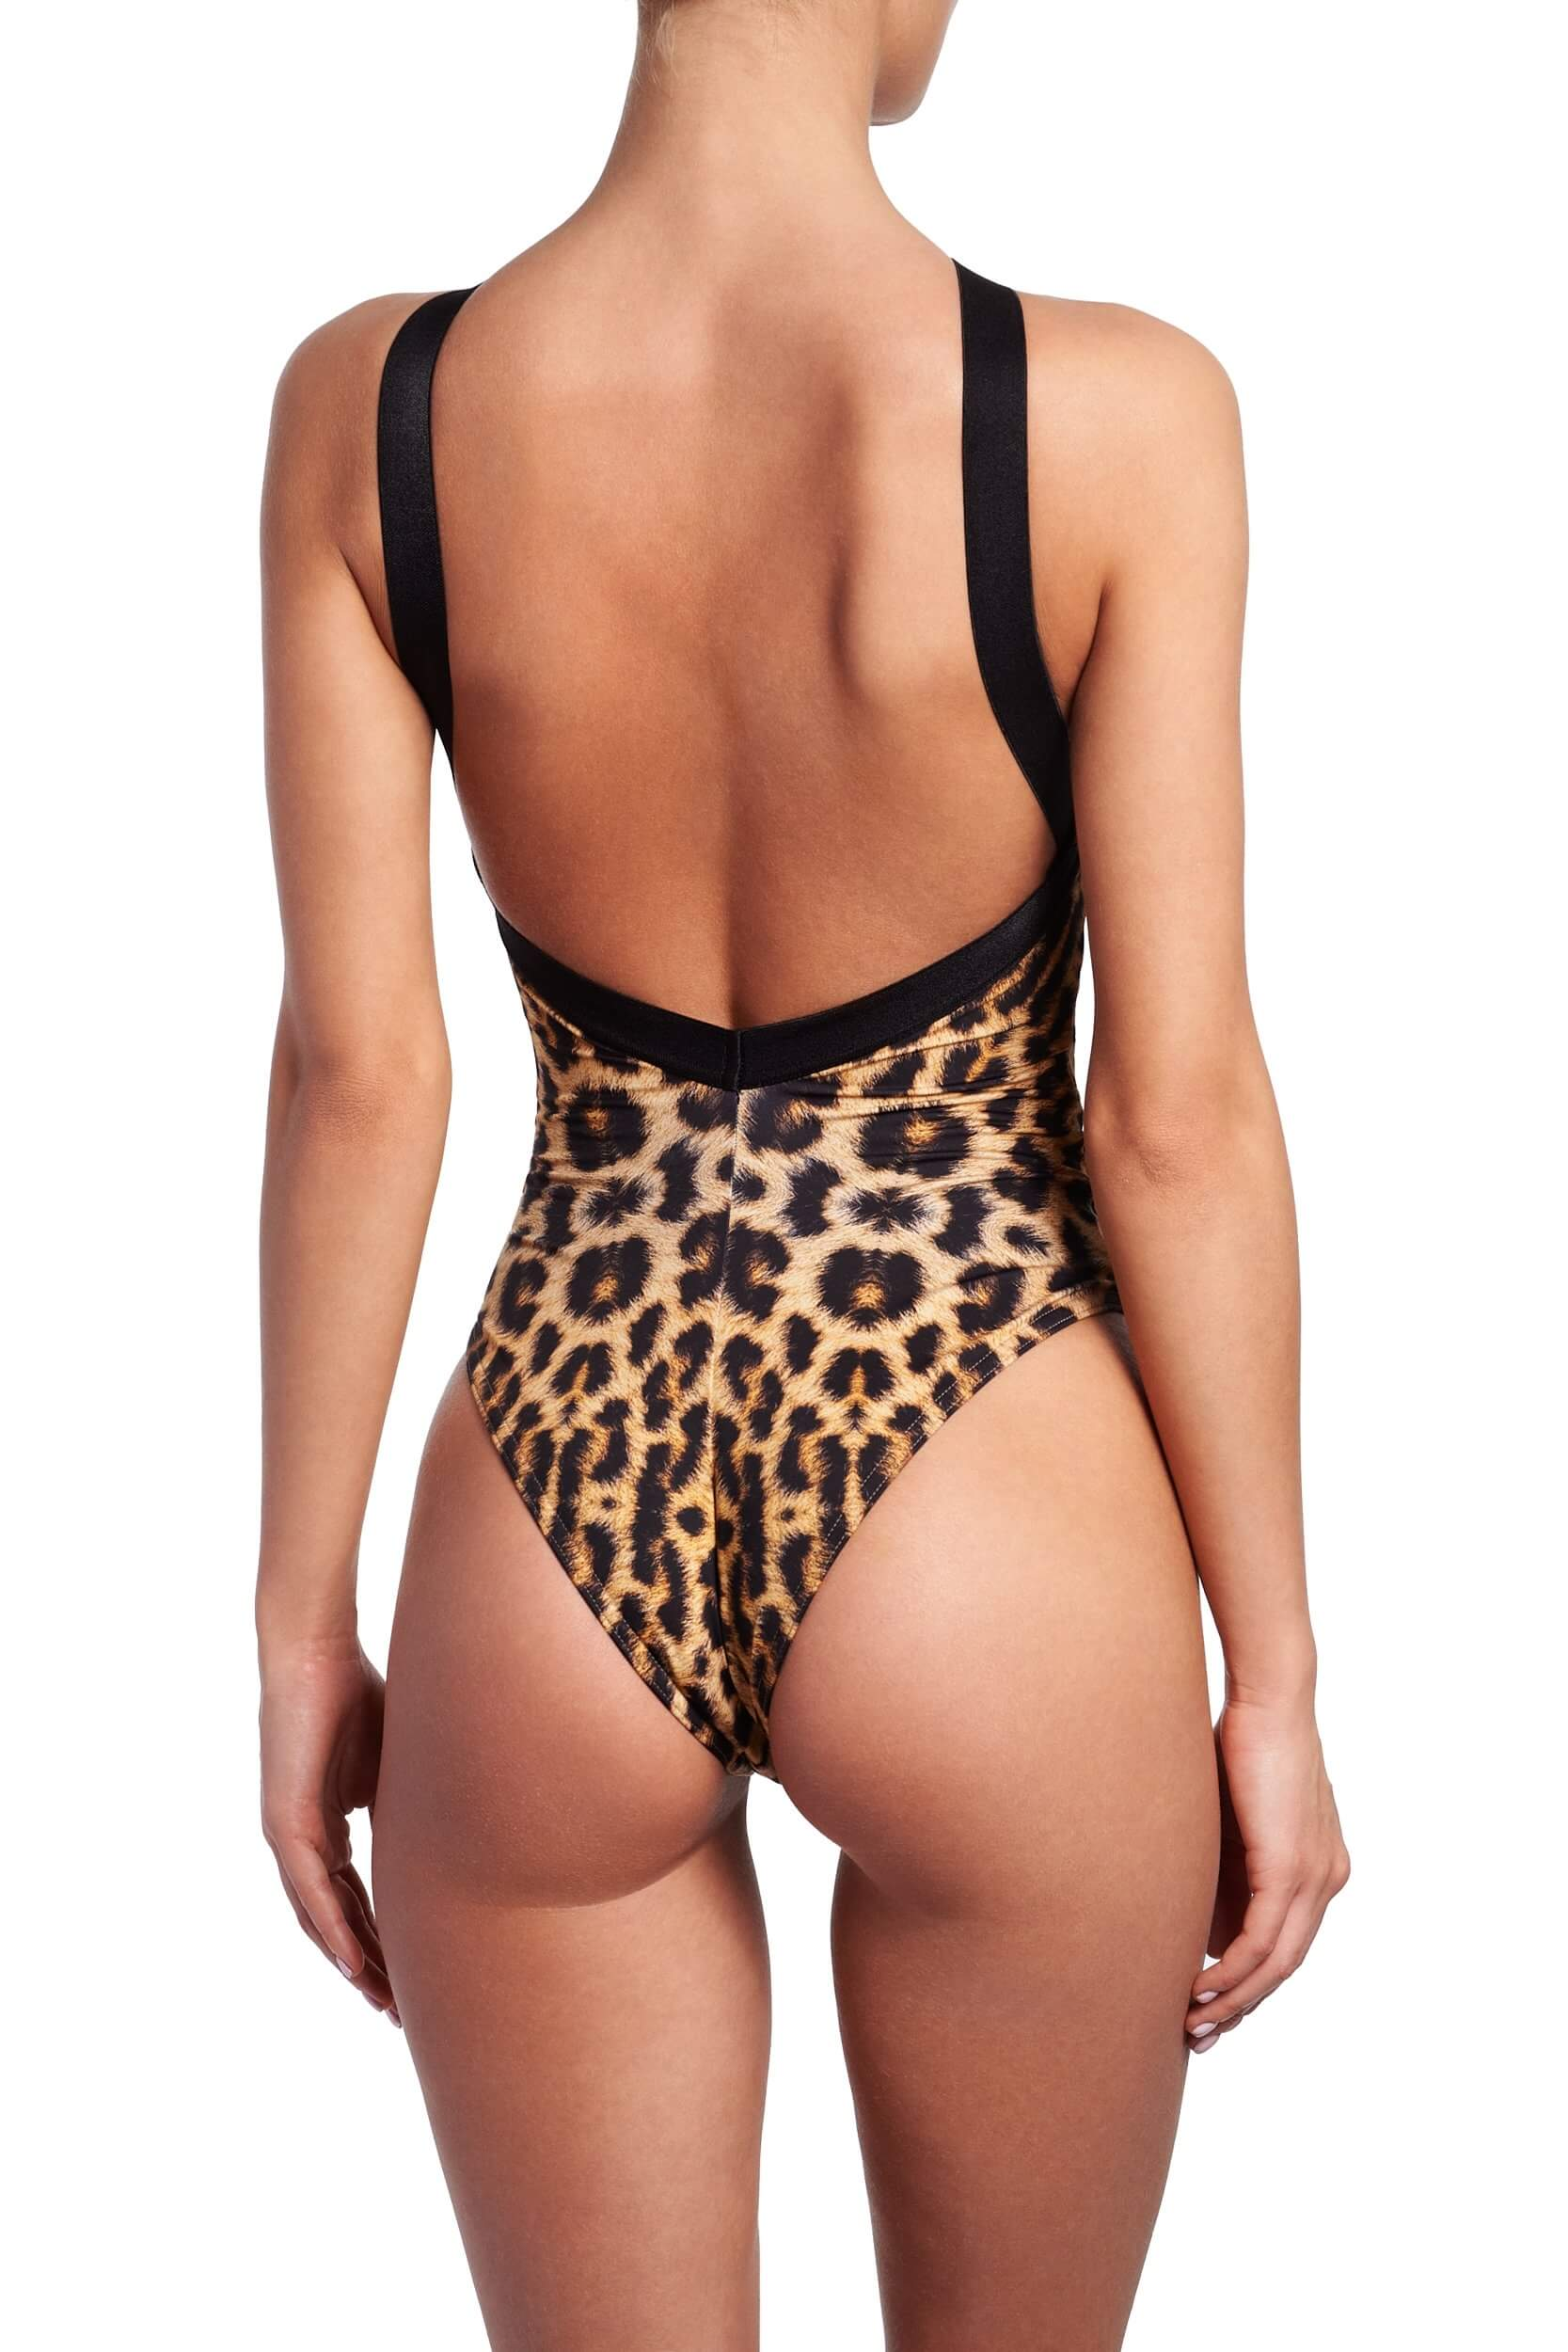 LEOPARD PUSHUP ONE PIECE BACK